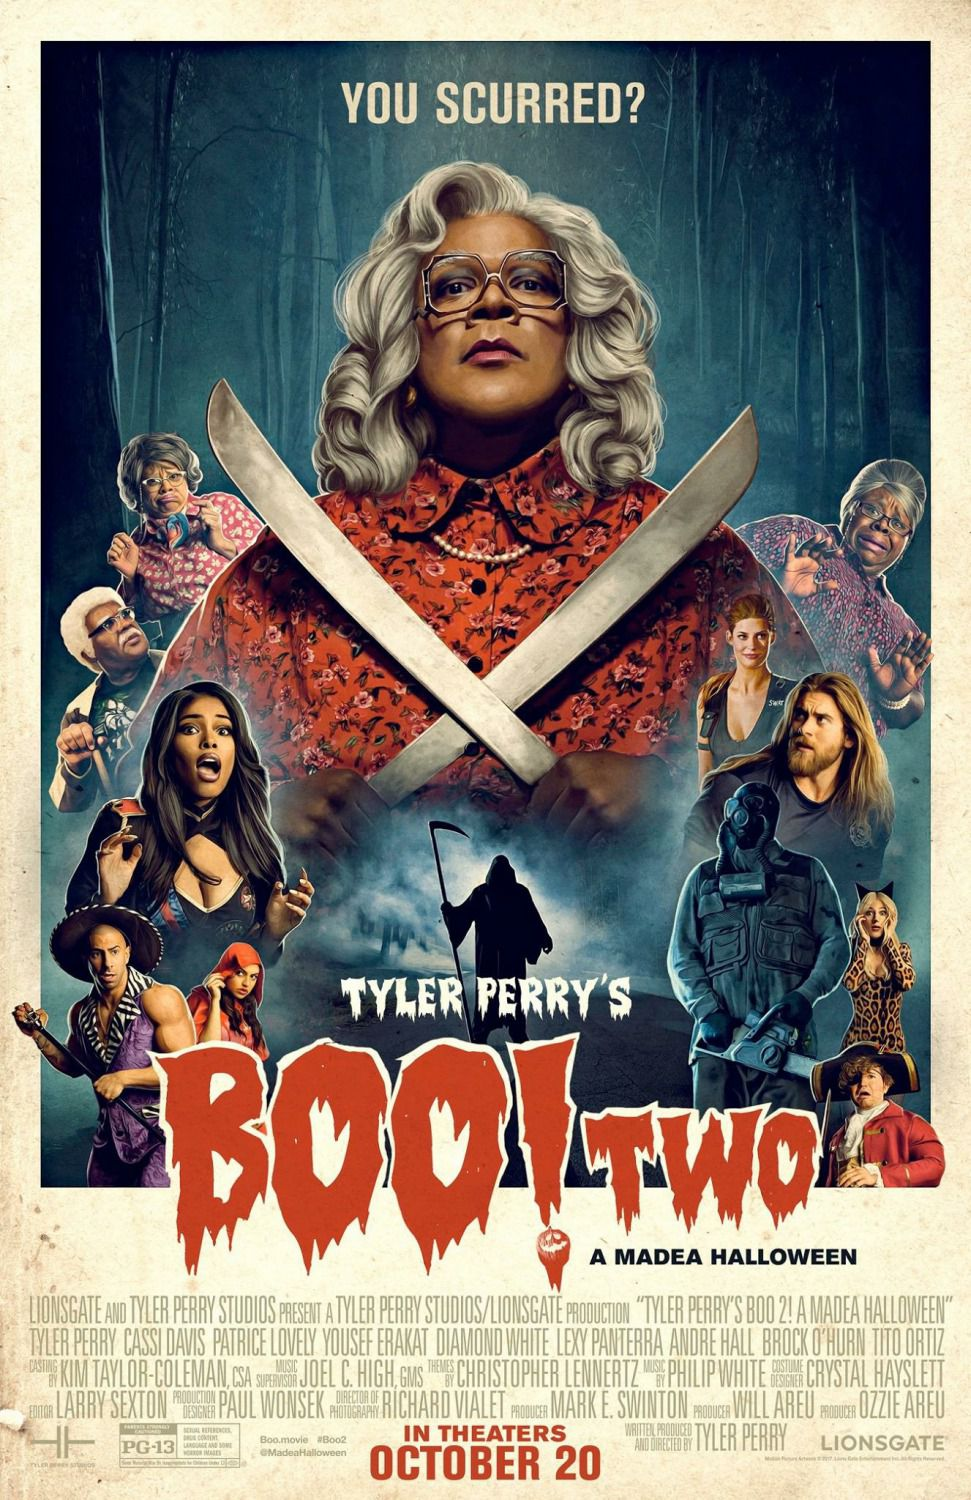 Tyler Perry's Boo 2 a Madea Halloween - You Scurred? - Cassi Davis - Patrice Lovely - Yousef Erakat - Diamond White - Lexy Panterra - Andre Hall - Brock O'Hurn - Tito Ortiz